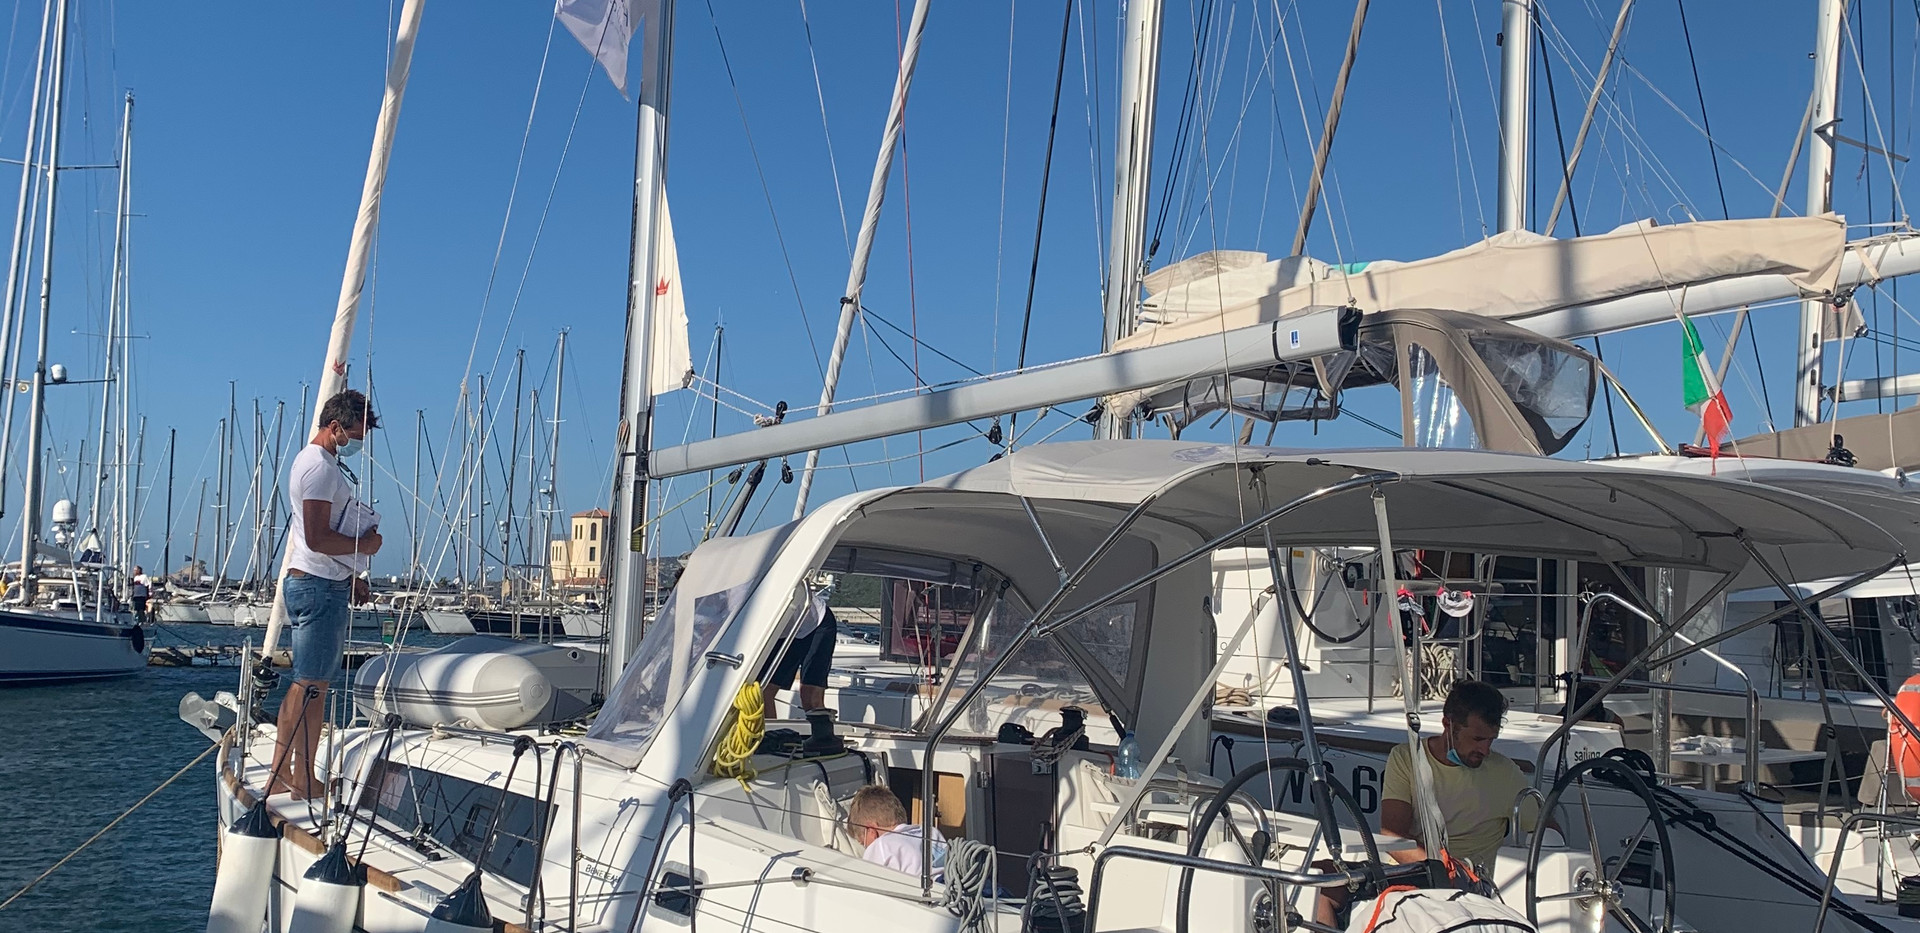 Sailing charter. Check-out process.